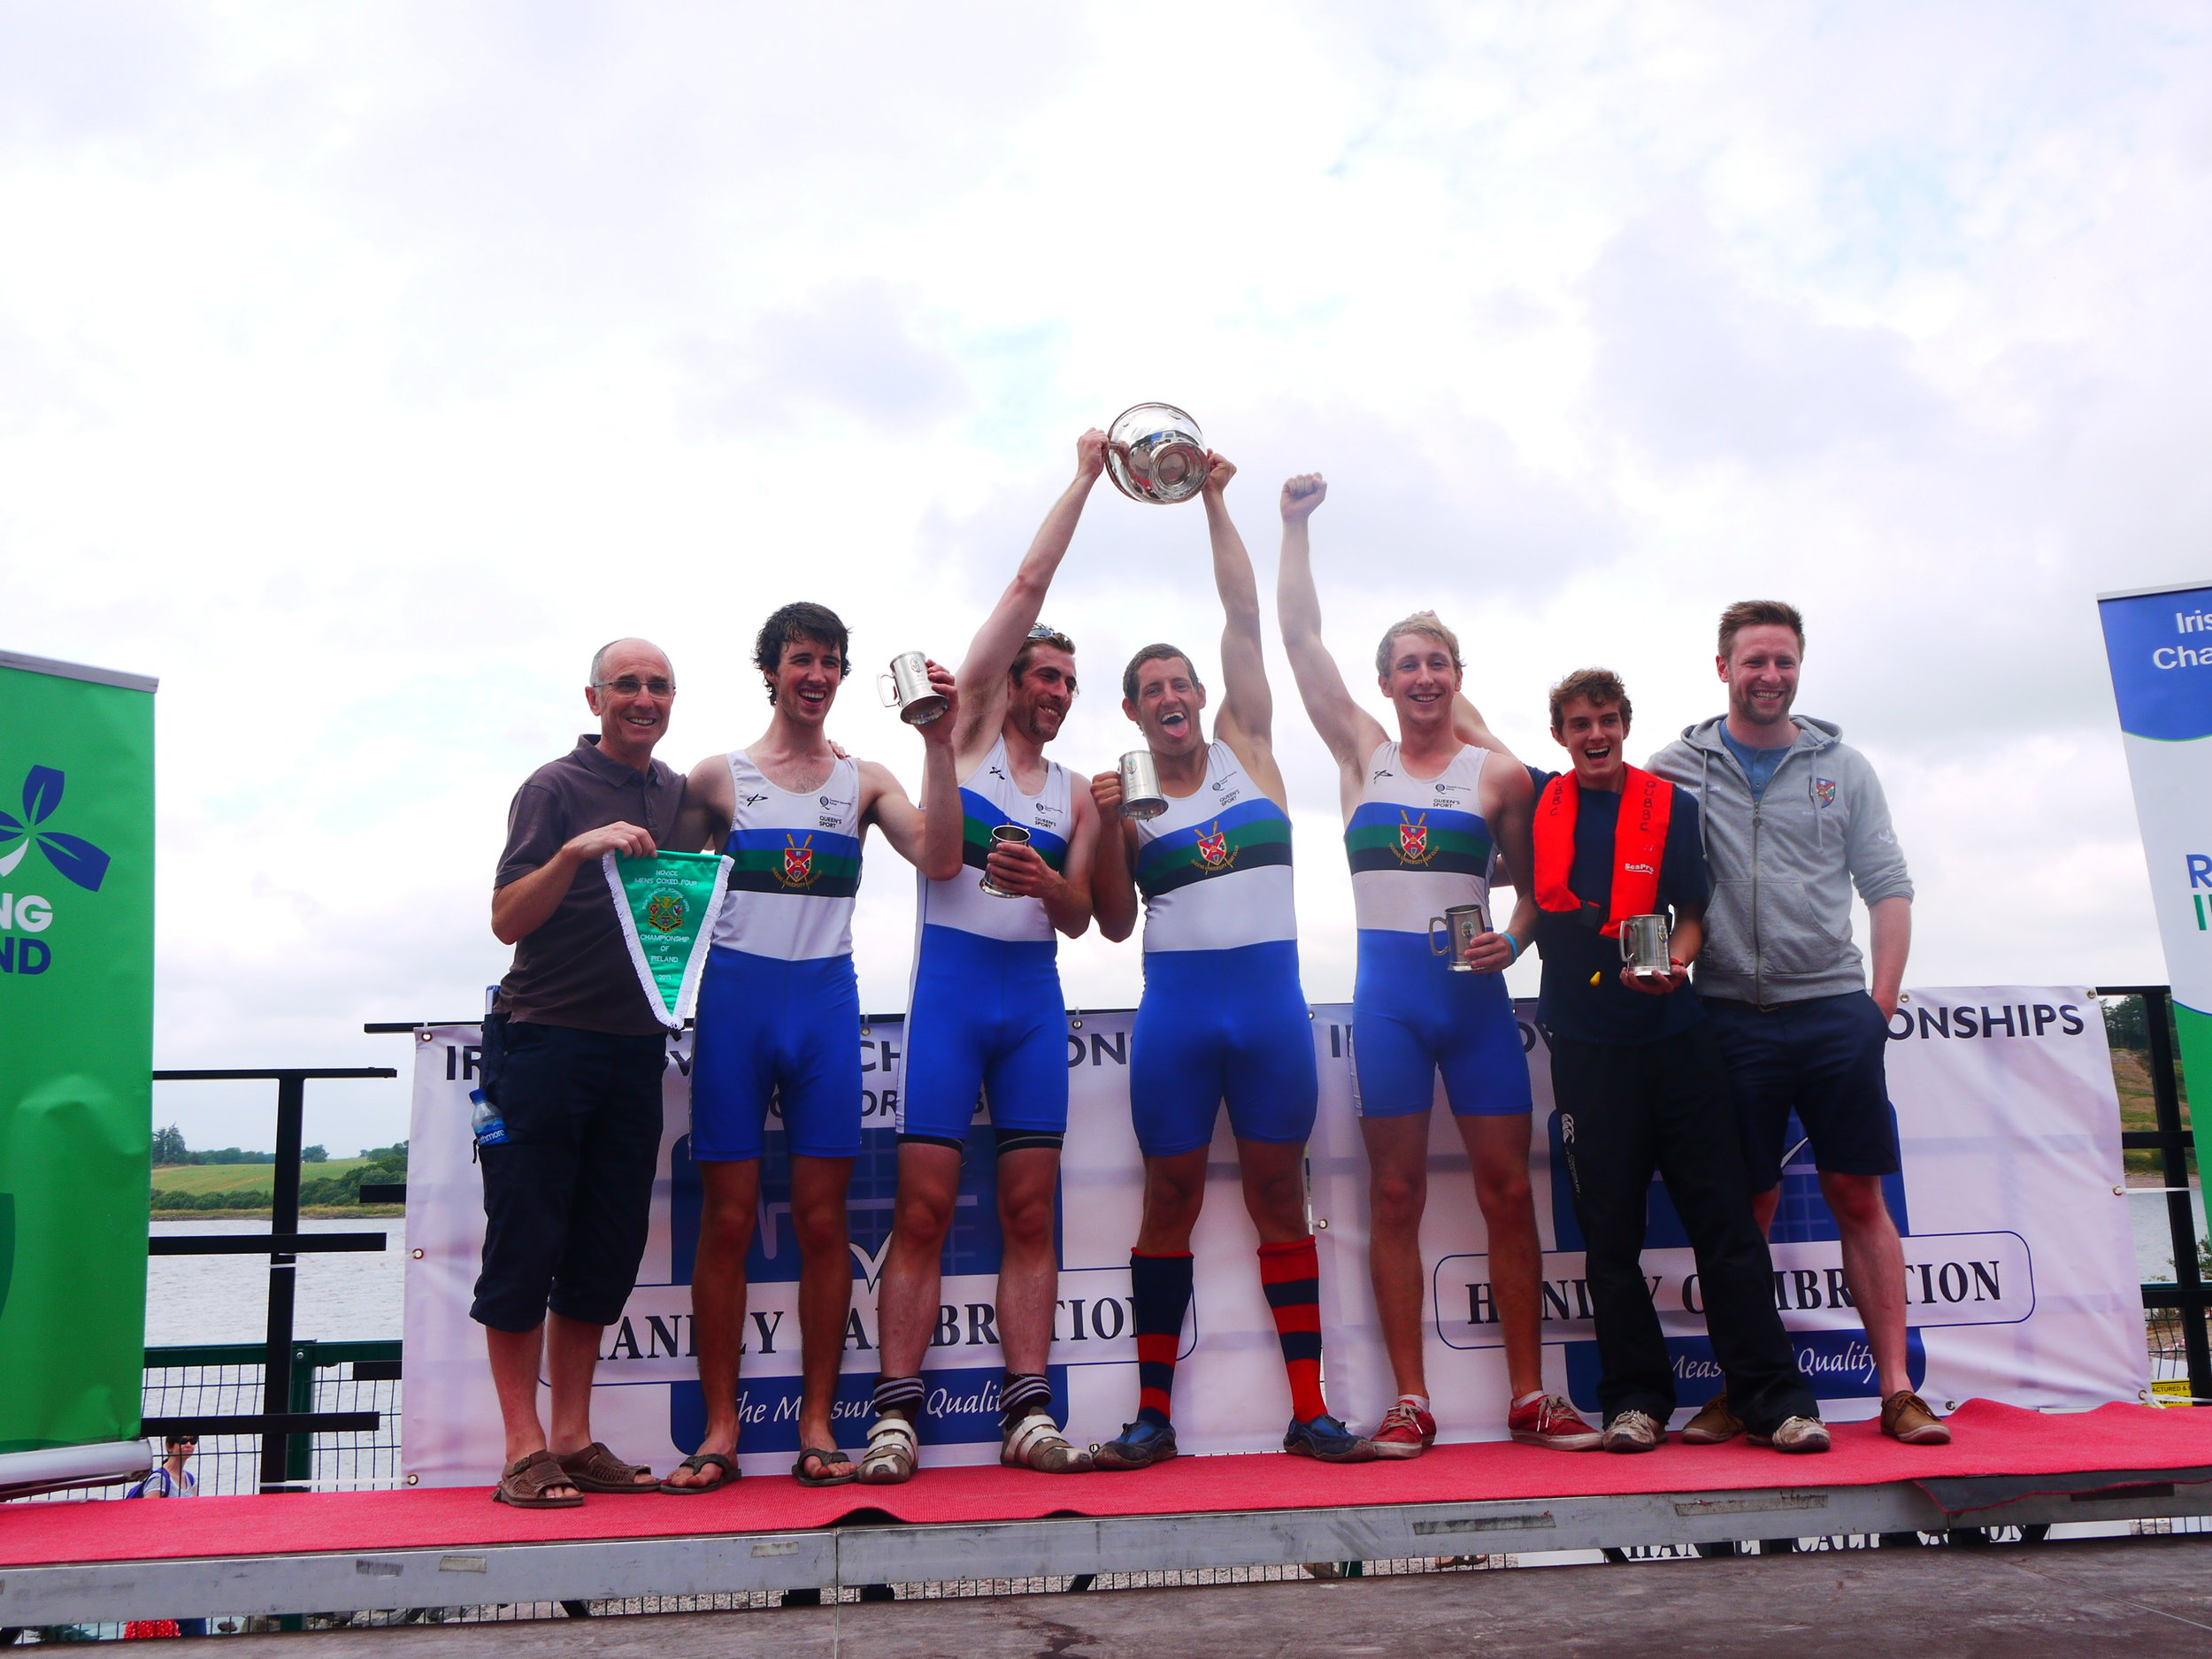 QUBBC Men's Novice Coxed Four Irish Champions 2013